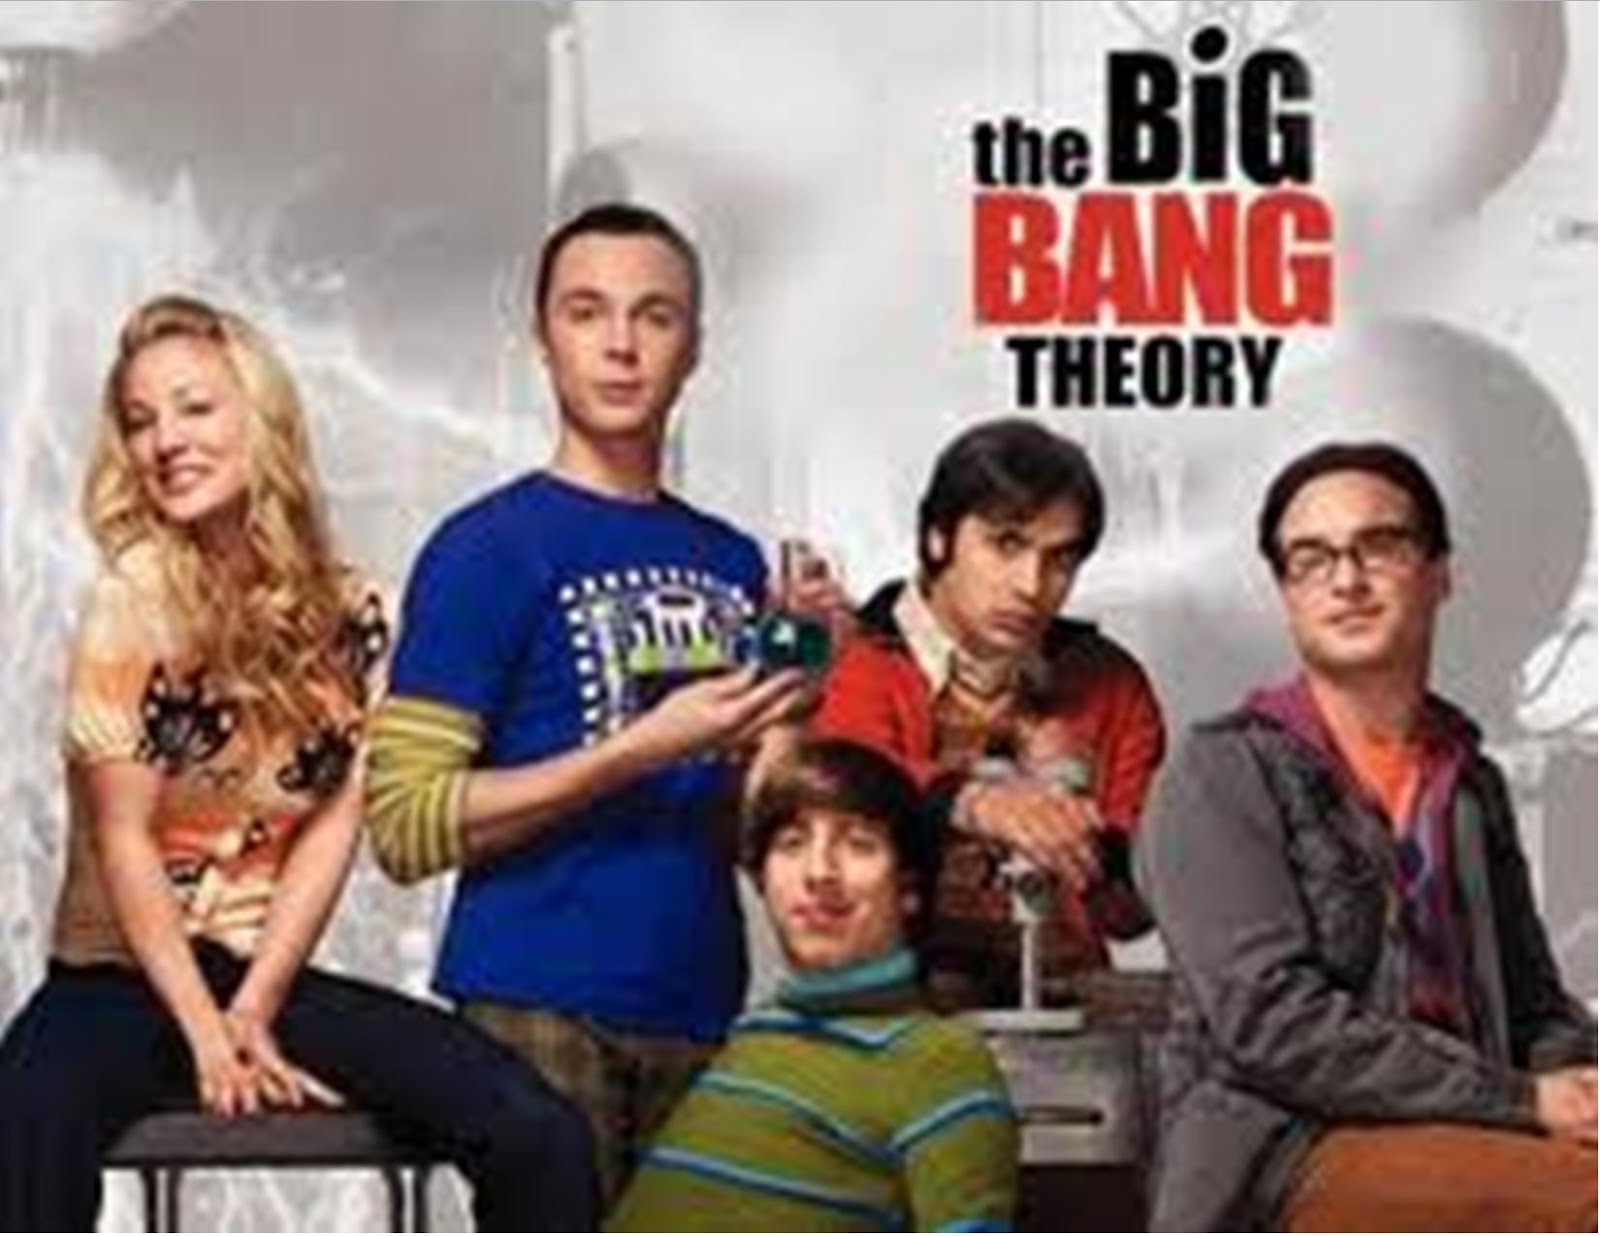 You Watch Online Free: Watch The Big Bang Theory Season 6